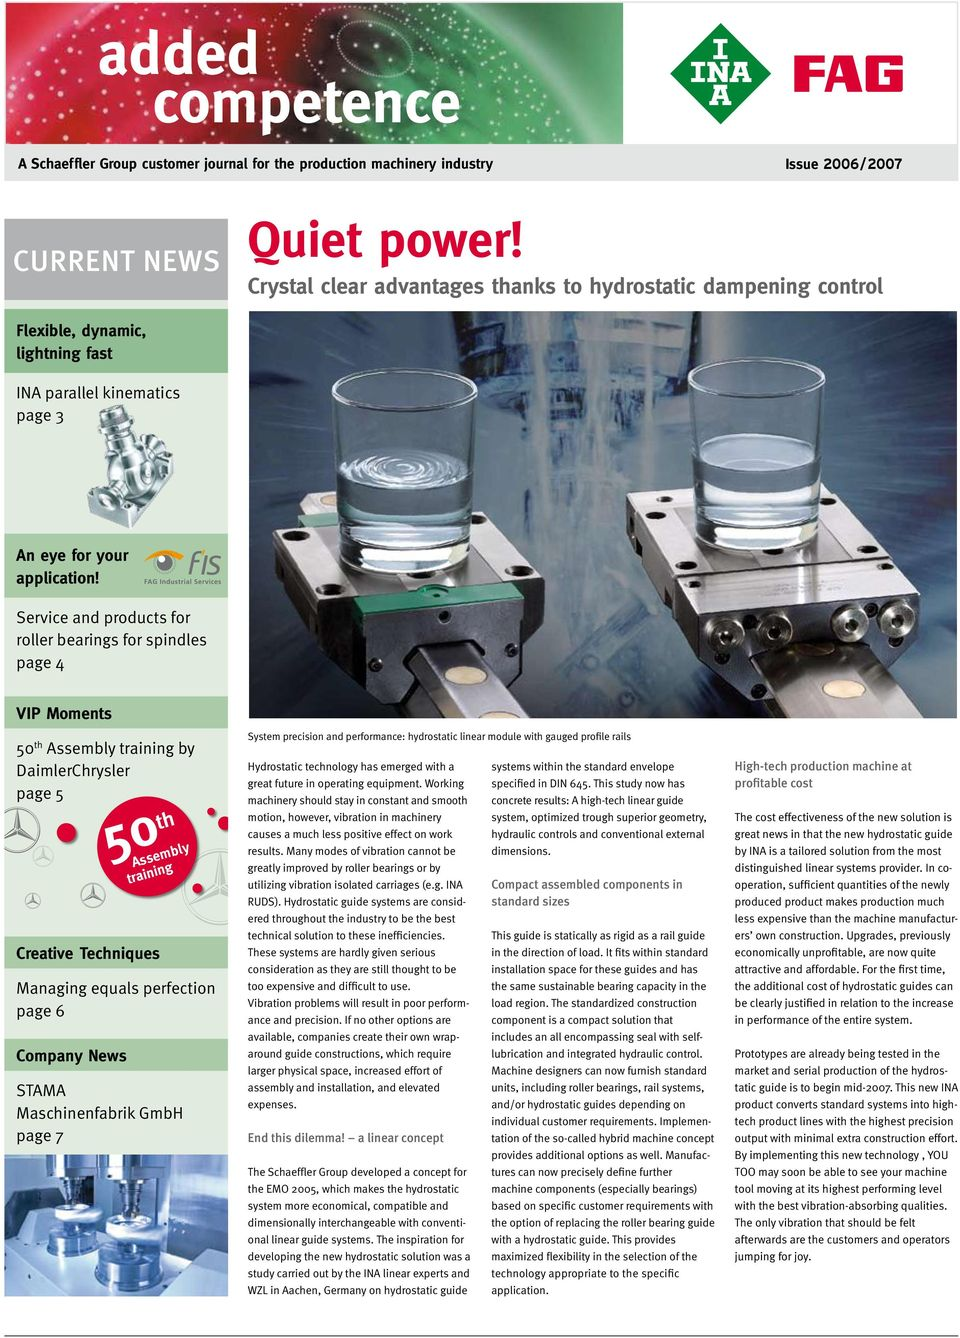 Service and products for roller bearings for spindles page 4 VIP Moments 50 th Assembly training by DaimlerChrysler page 5 Creative Techniques Managing equals perfection page 6 Company News 50 th